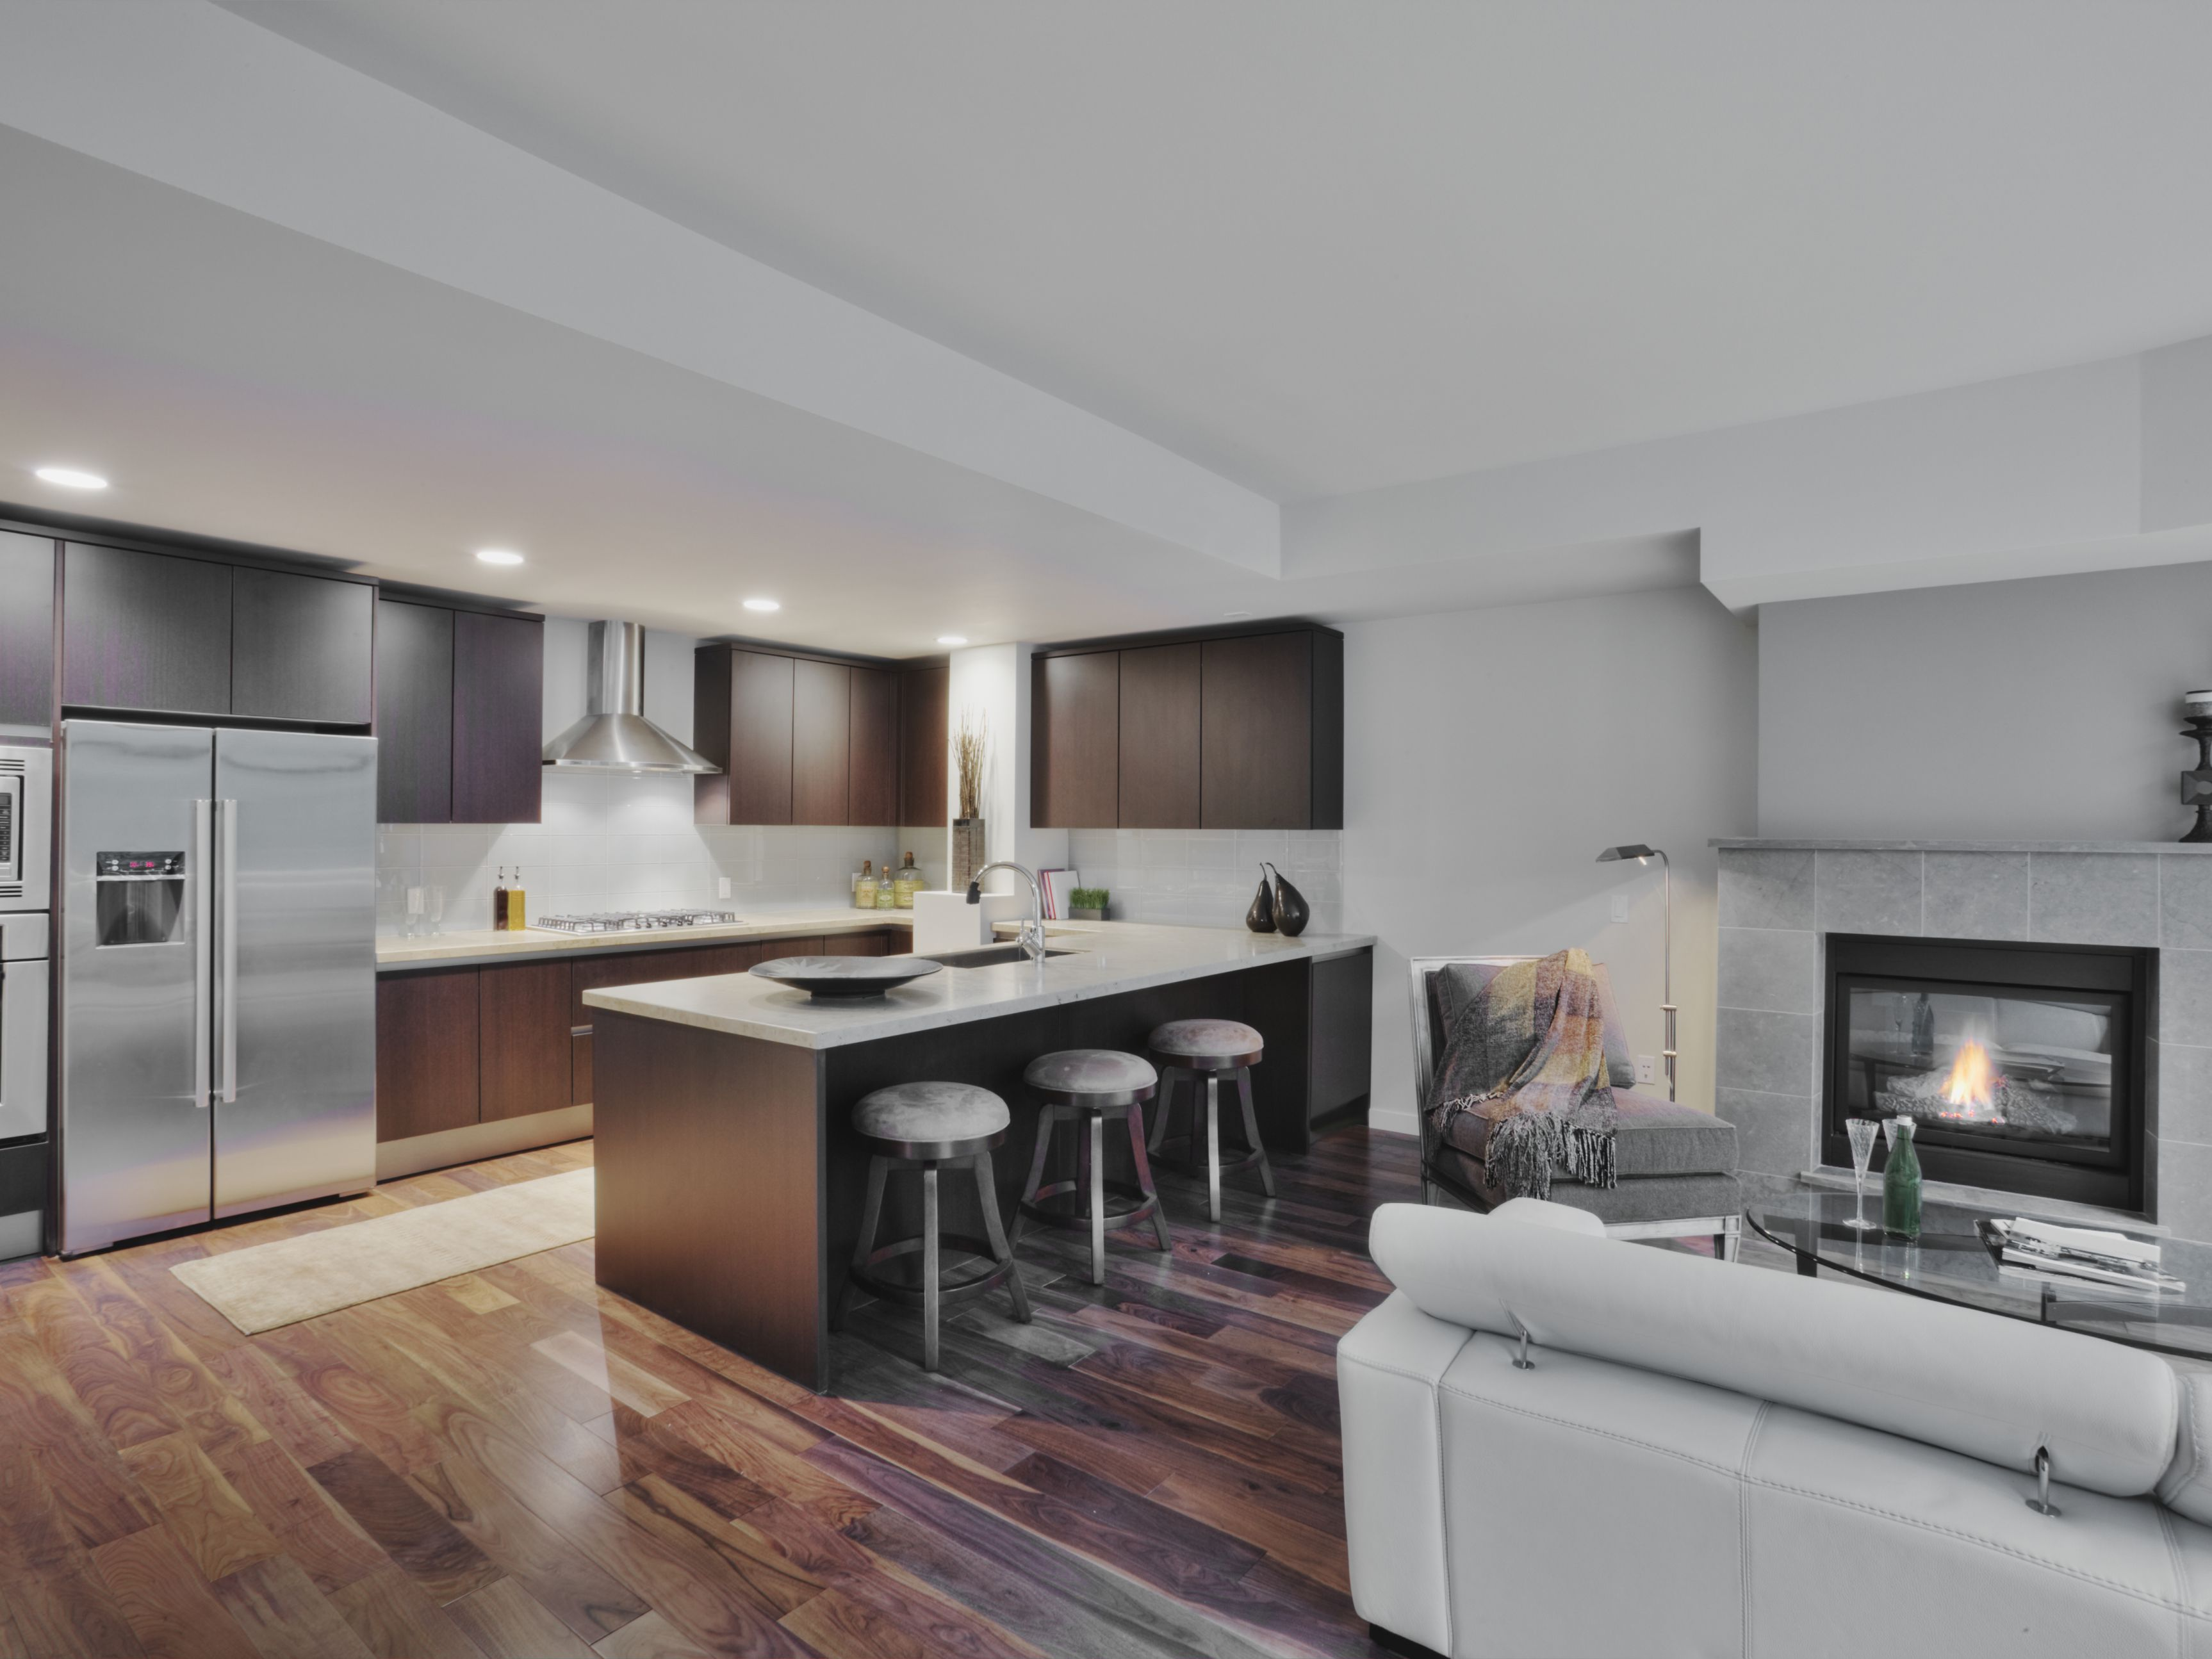 Open-Plan-Kitchen-with-Wood-Floor-188074734-Spaces-Images-56a4a1673df78cf77283536c